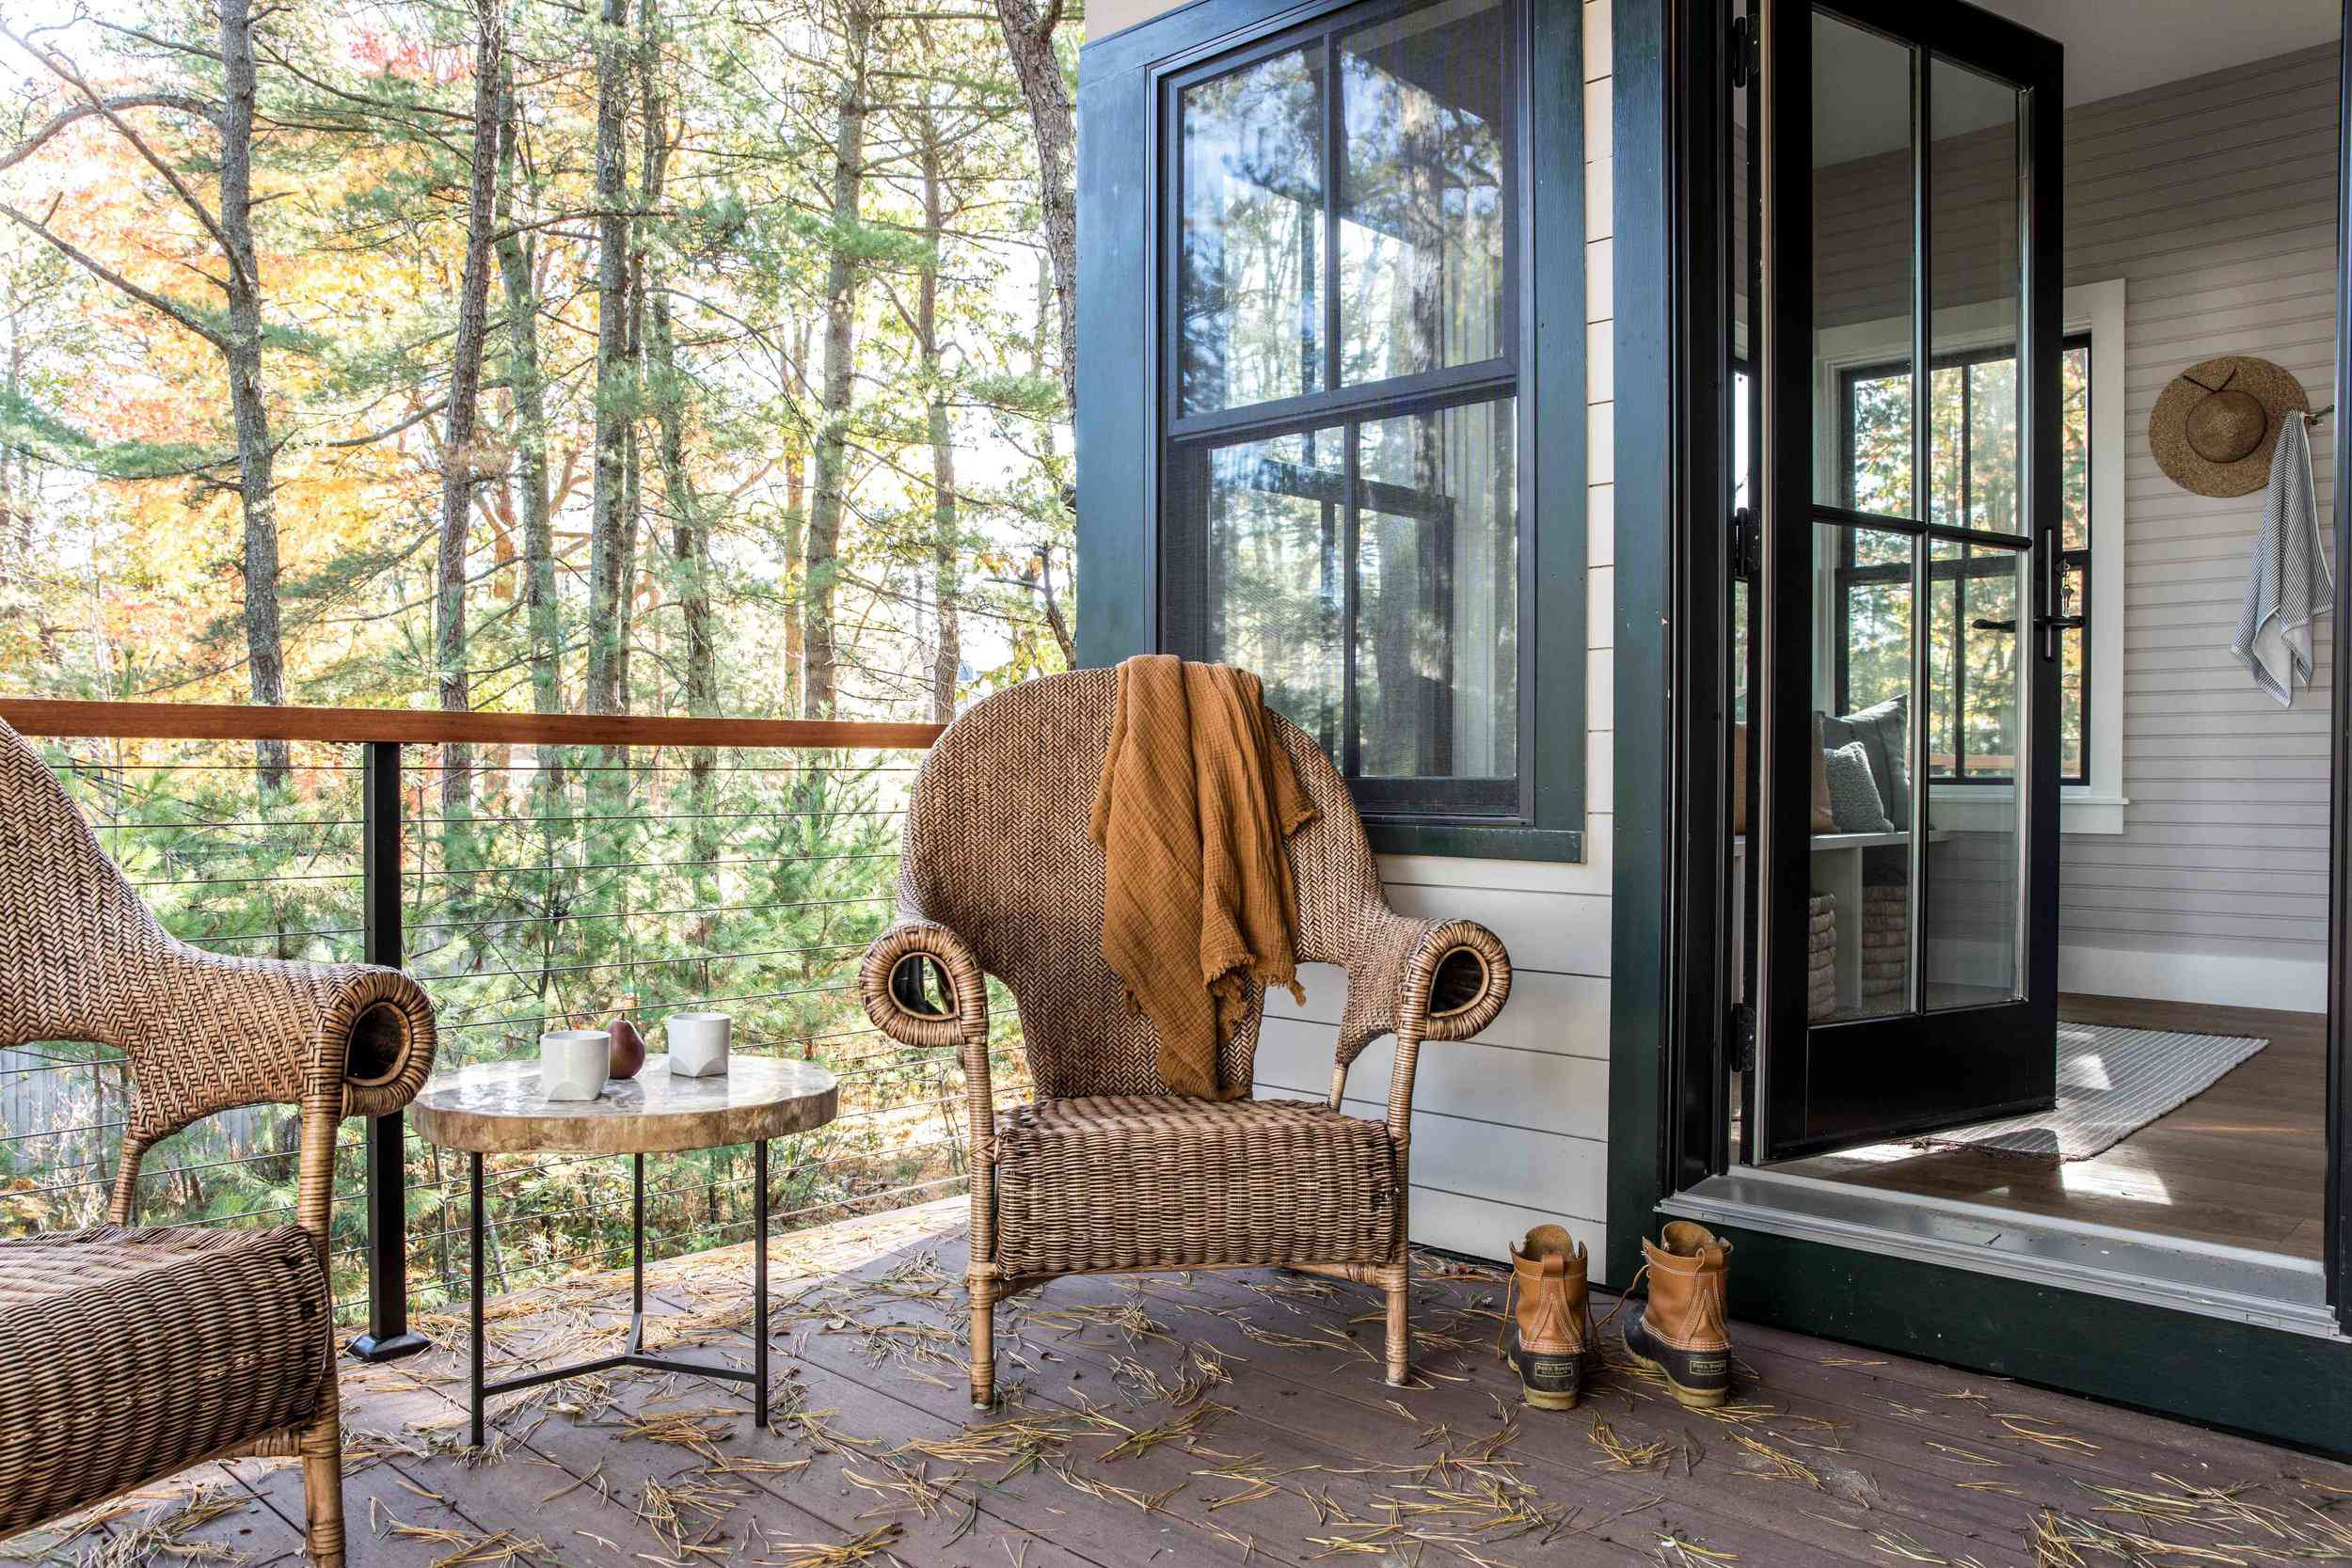 An outdoor deck with a breakfast nook craft from a small table and two woven chairs